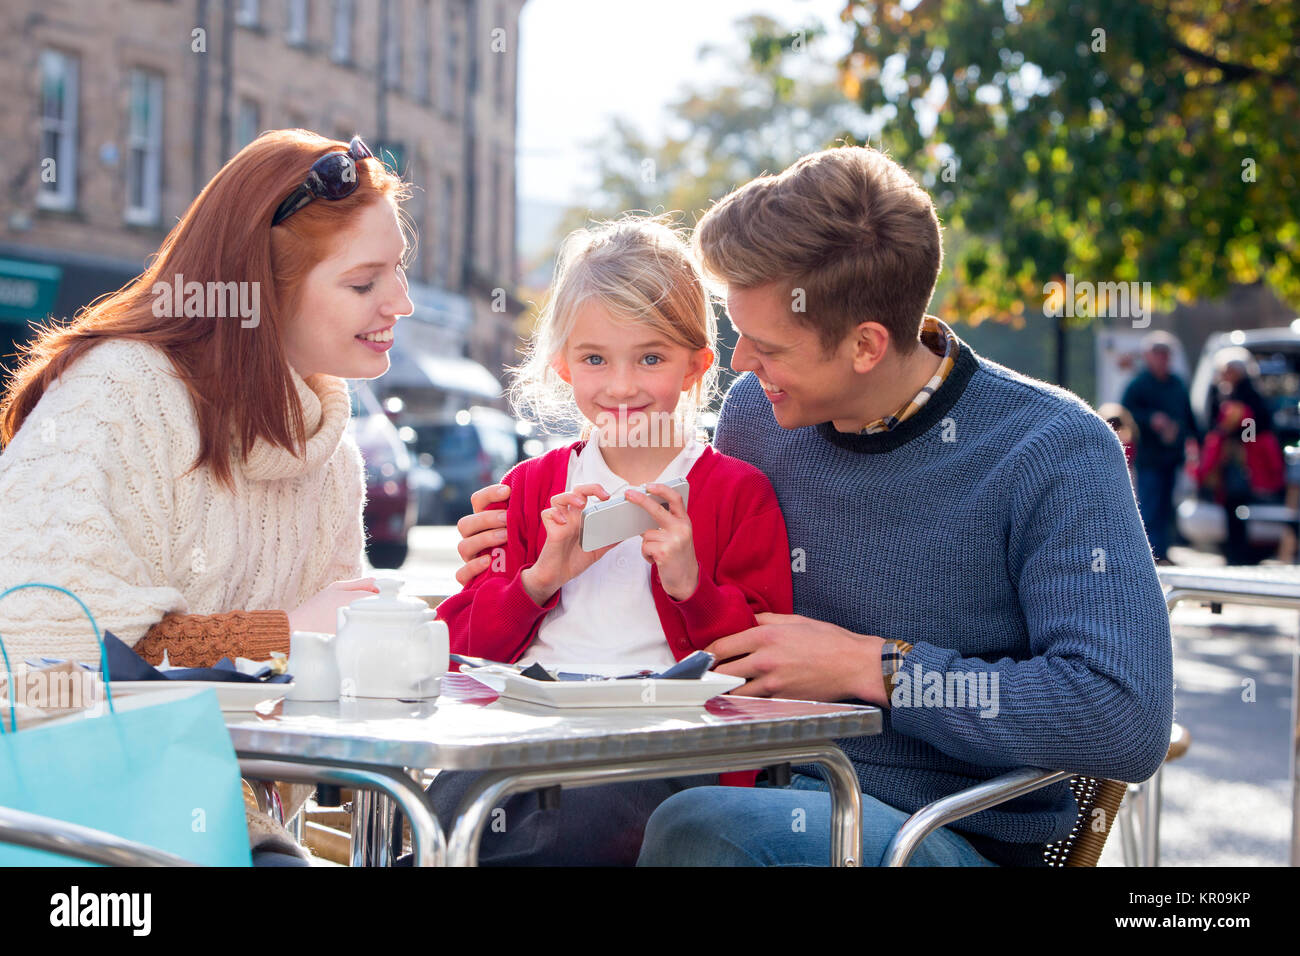 Educating Parents on Modern Technology - Stock Image